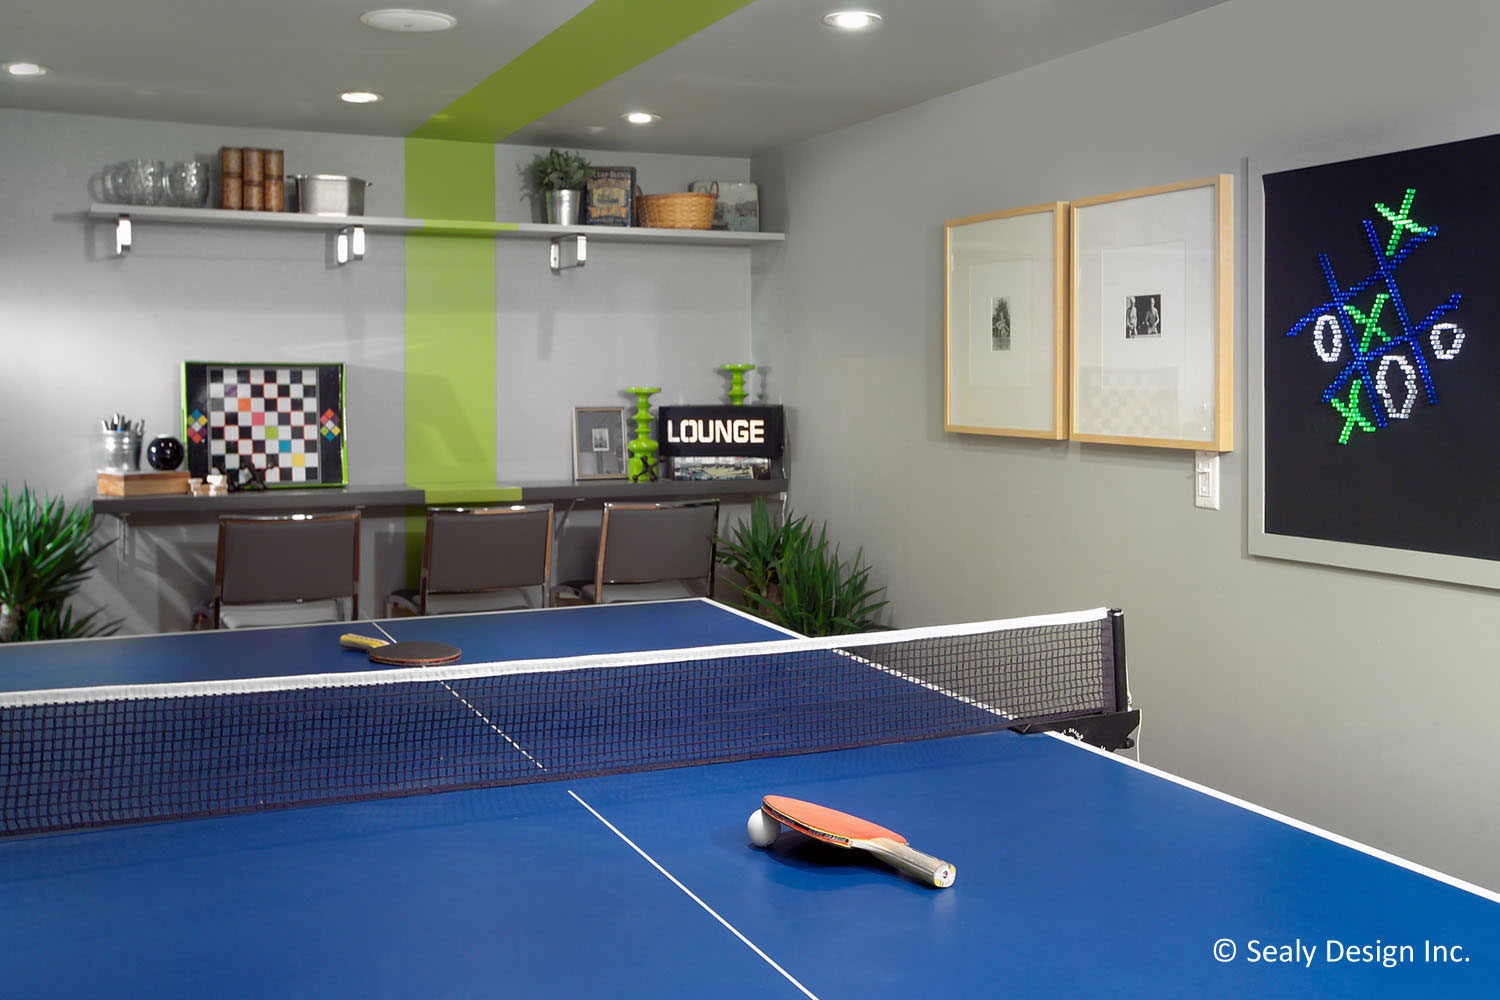 Basement Bedroom Ideas For Teenagers Photos Sealy Design Inc